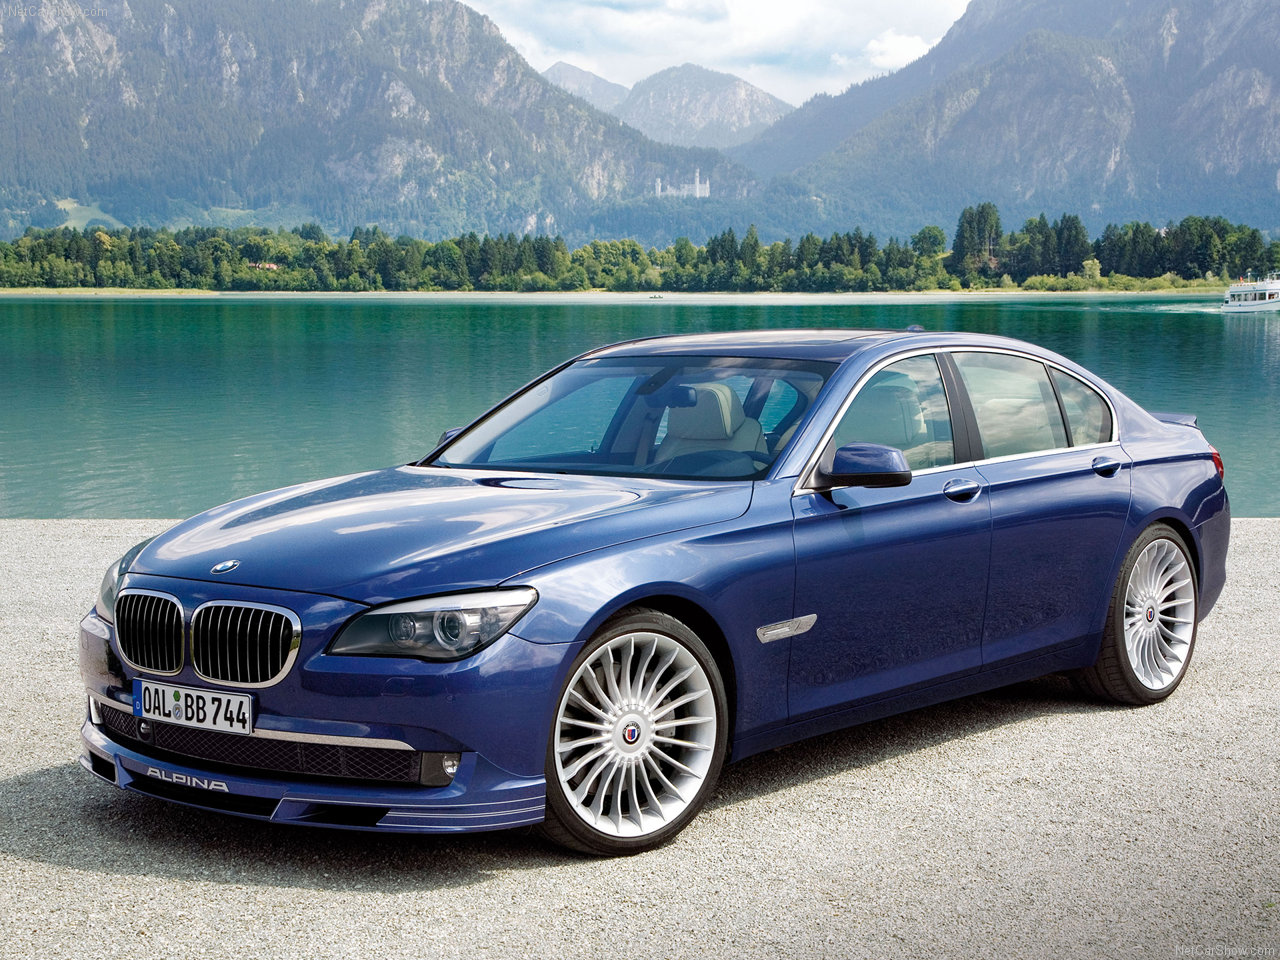 2007 Bmw Alpina B7 Overview Cargurus